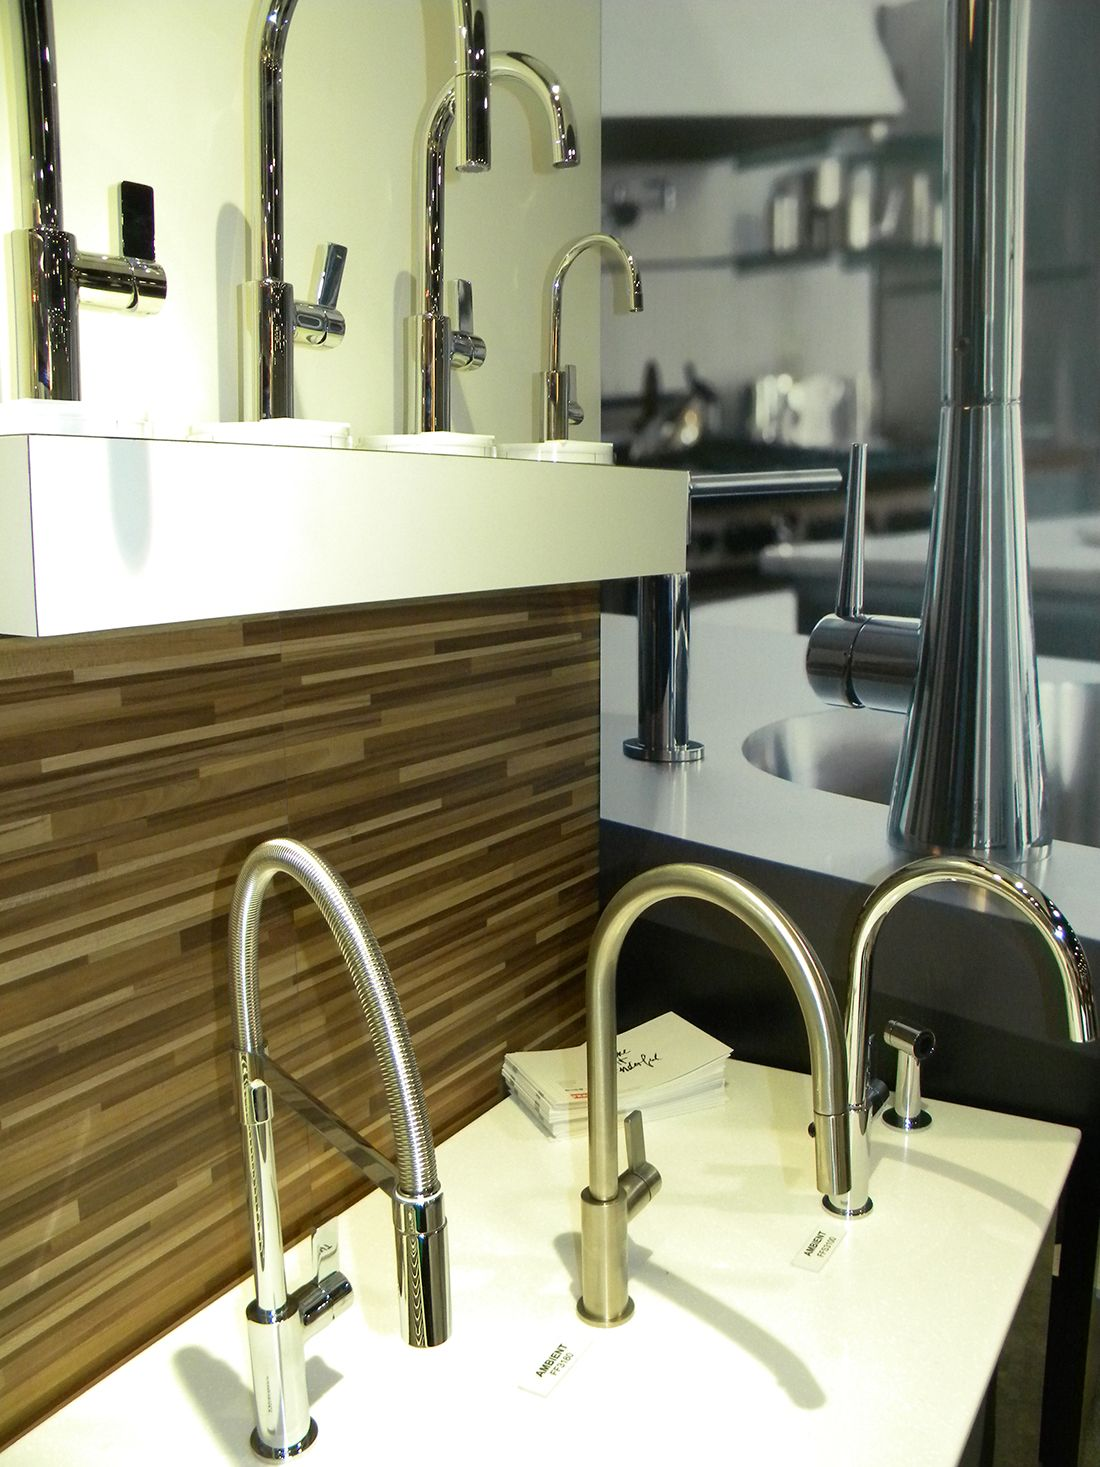 New Franke Ambient Series faucets   KBIS 2015   Pinterest